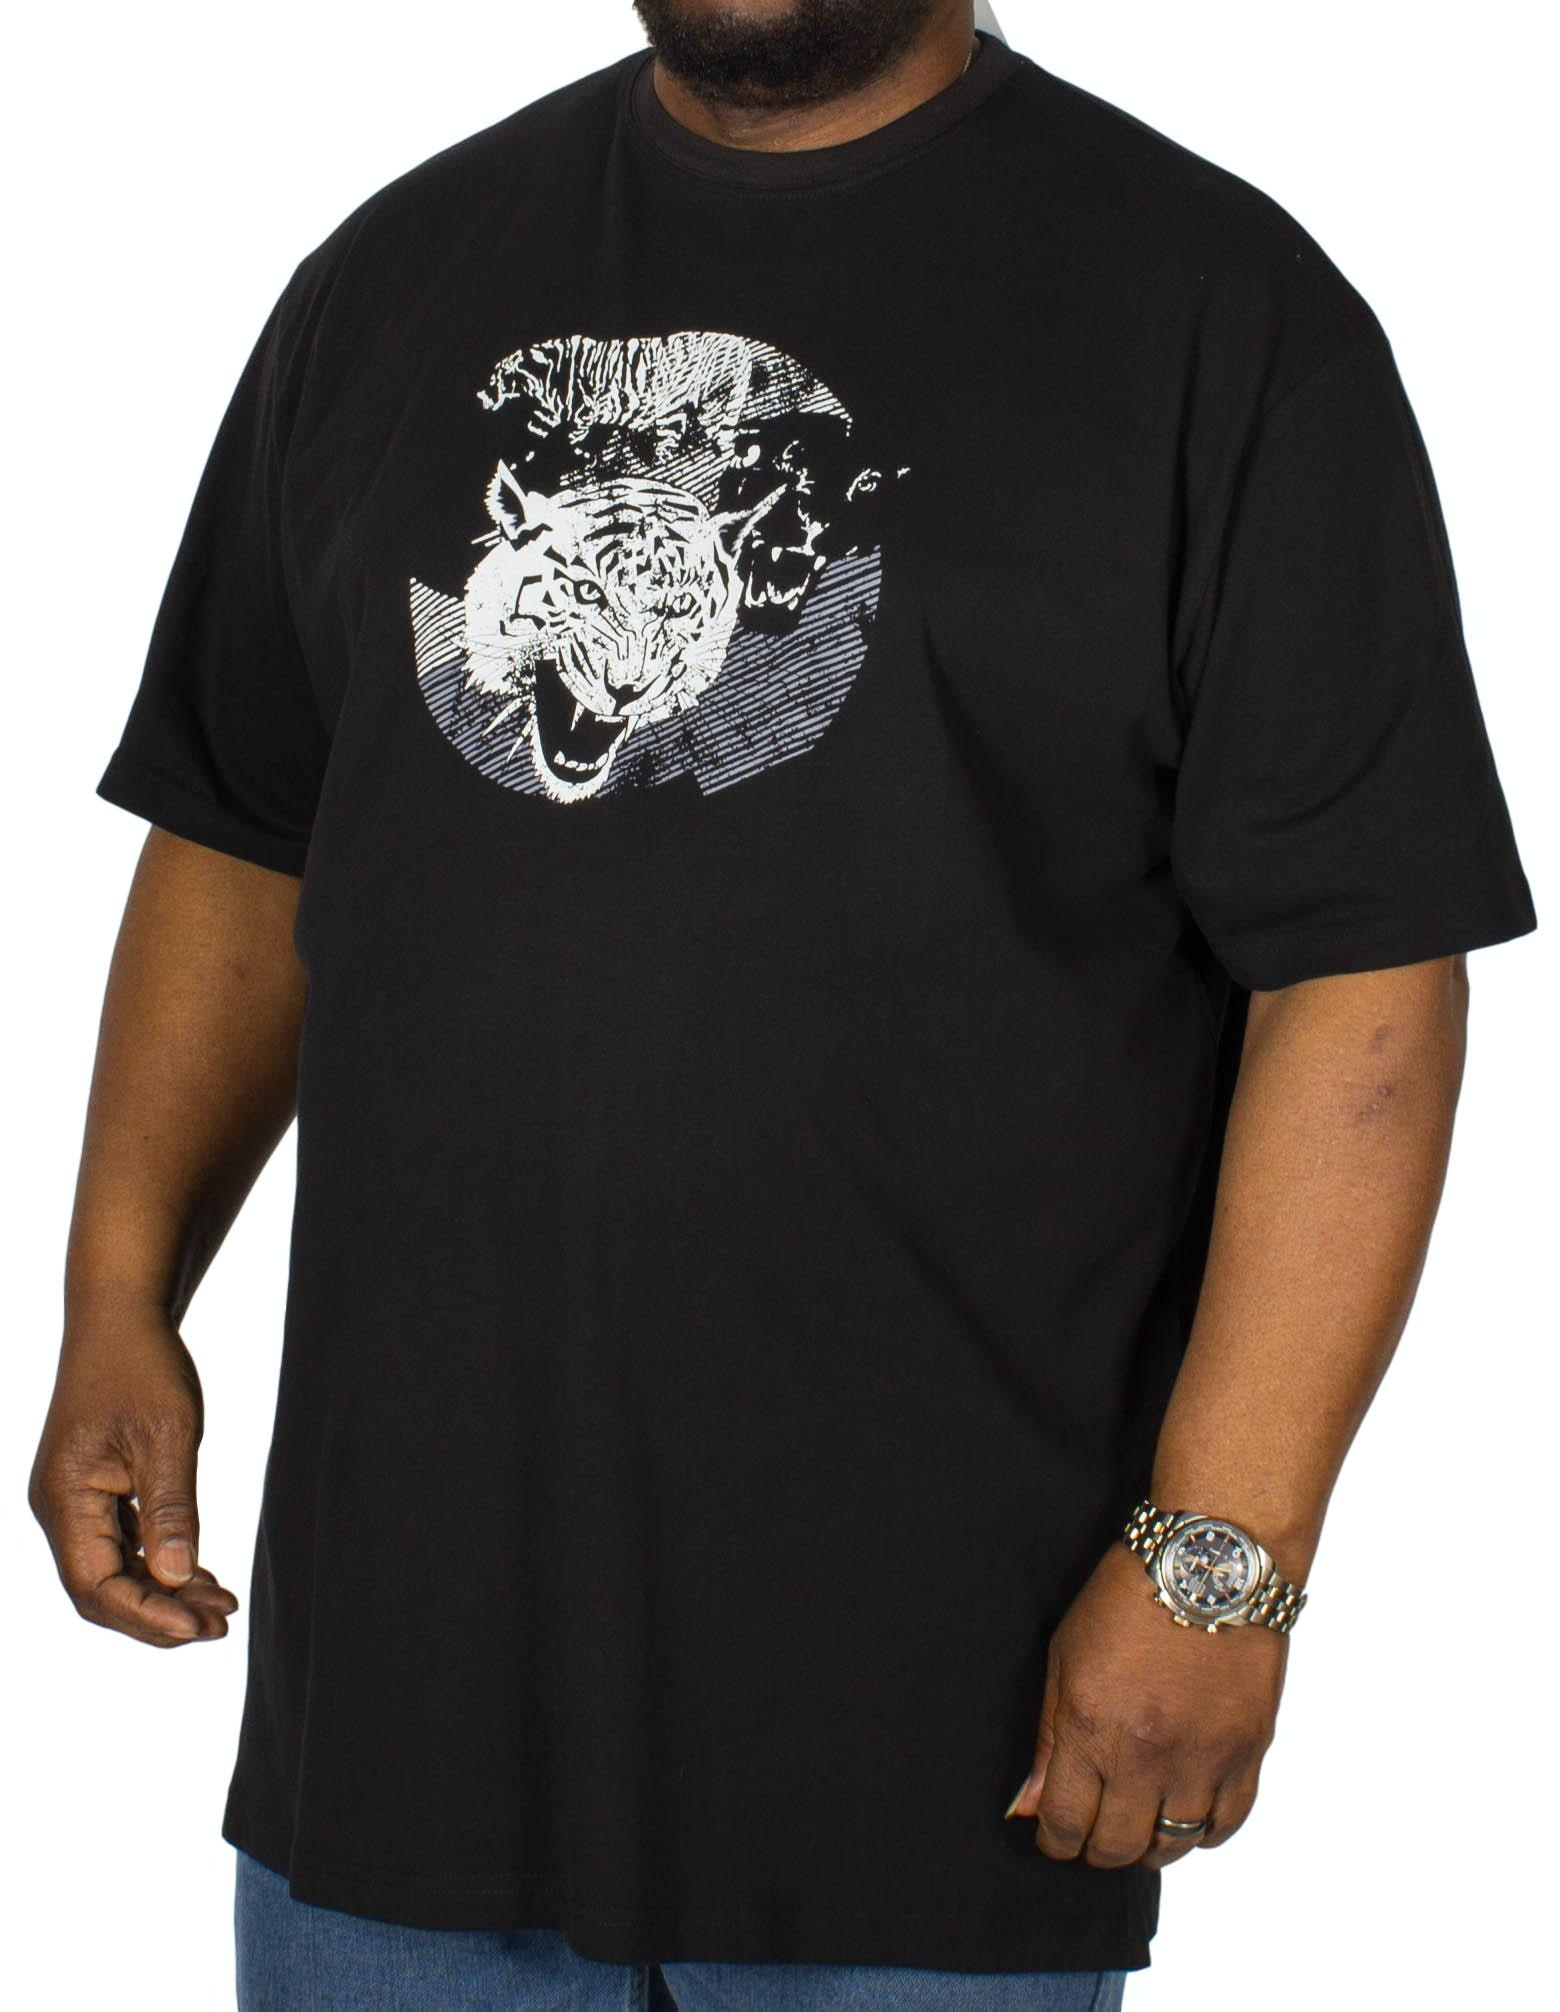 Cotton Valley Tiger Printed T-Shirt Black